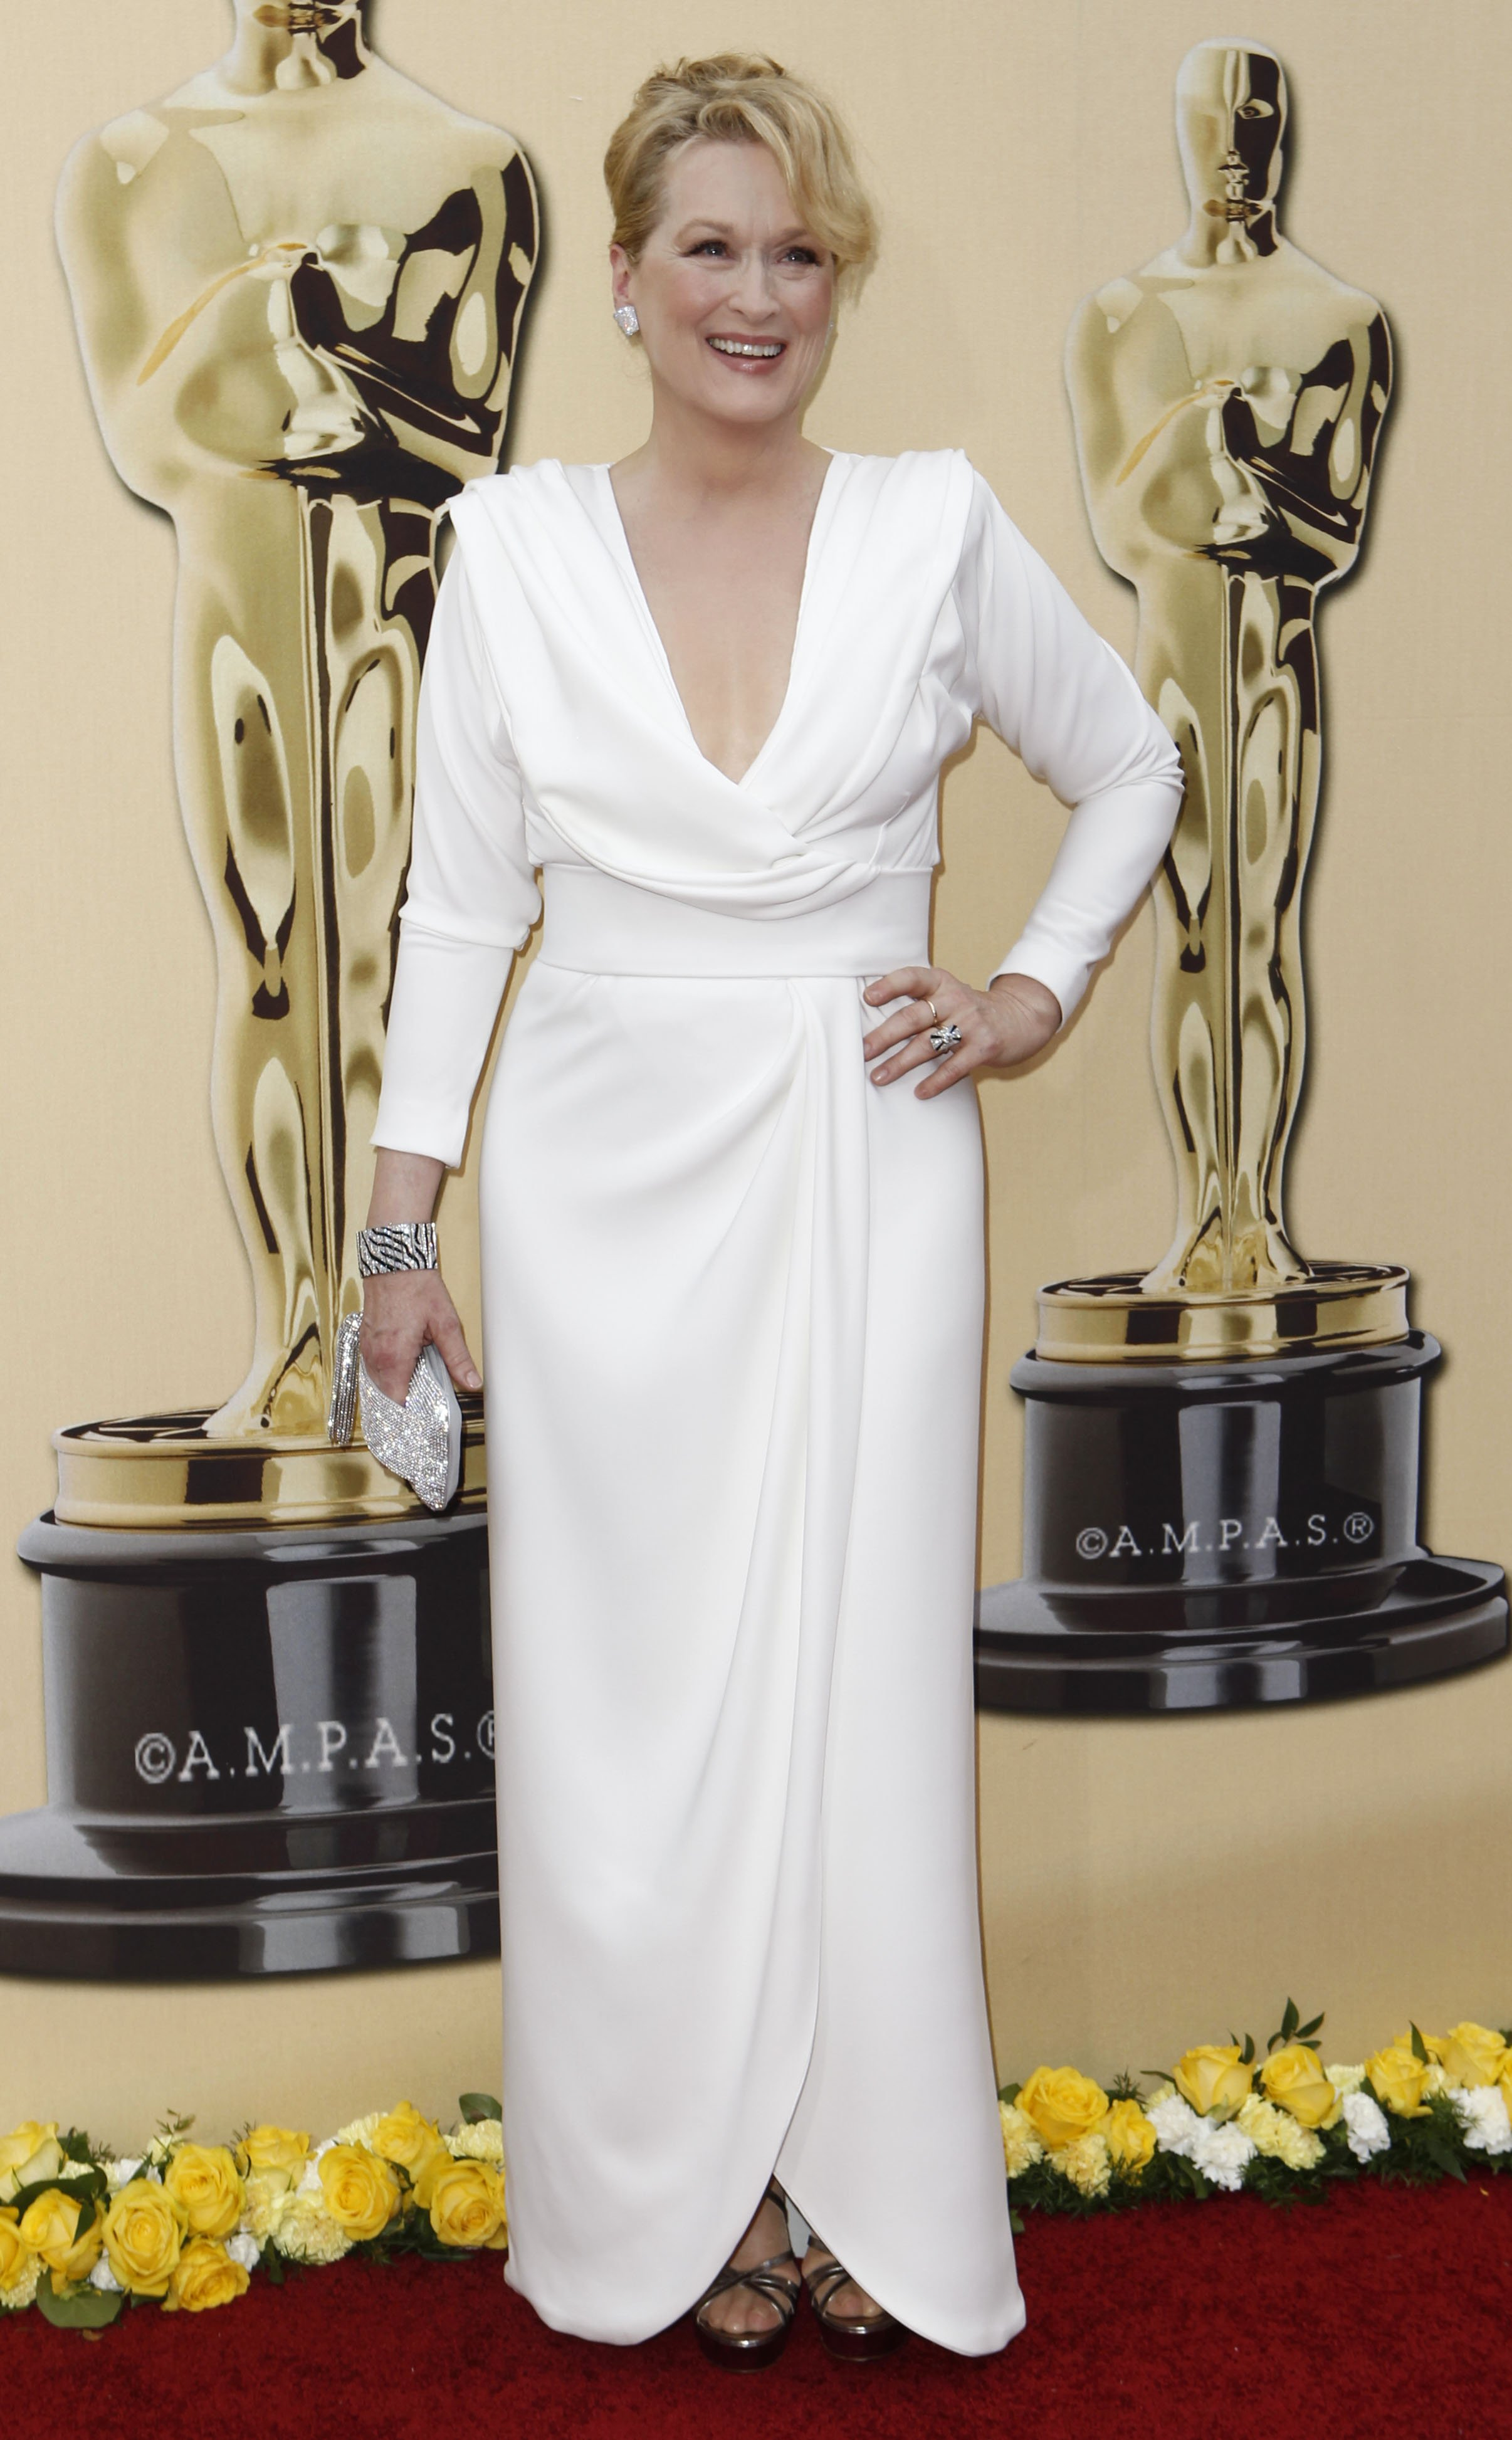 Meryl Streep in a Chris March design at the Oscars in 2010